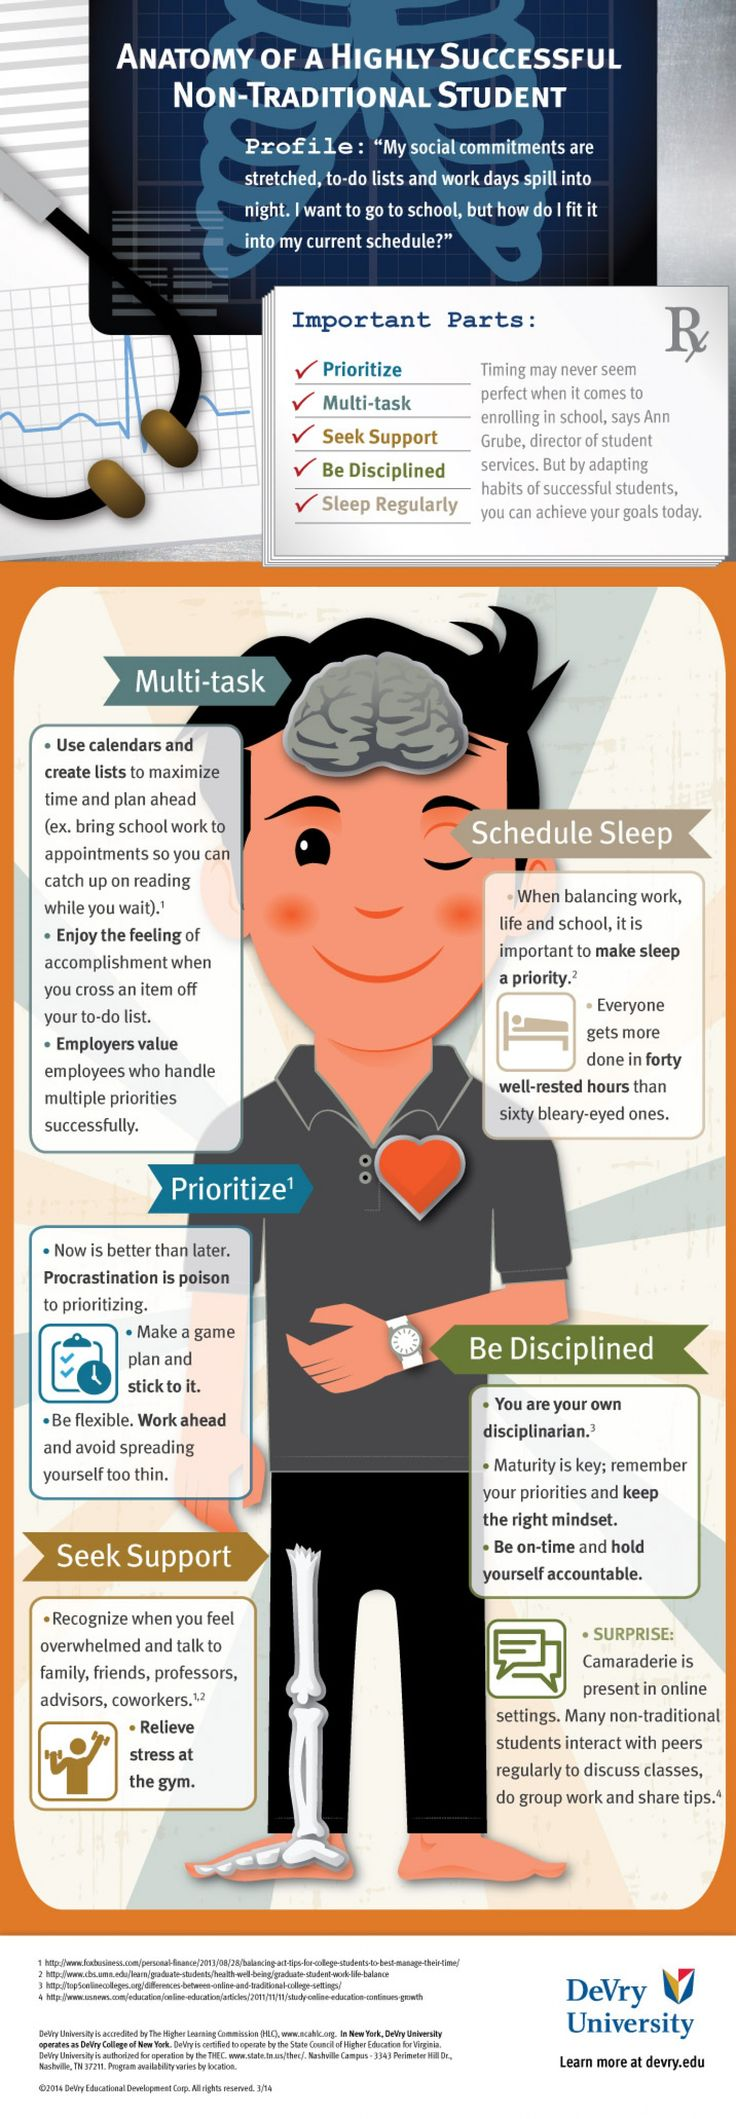 Anatomy of a Highly Successful Non-Traditional Student Infographic from Devry.  This info was appreciated.